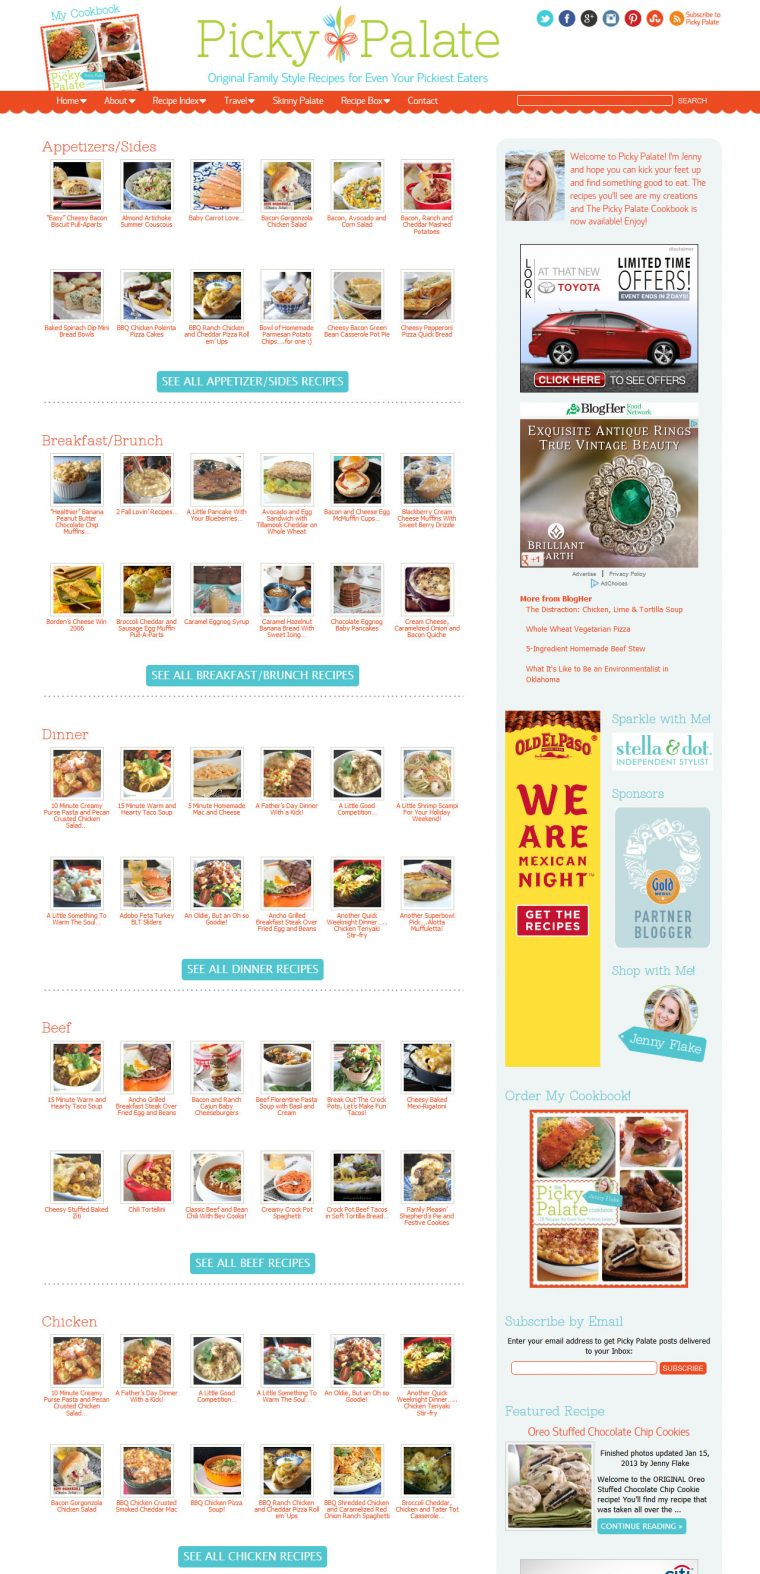 Blog Design for Picky Palate by Swank Web Design